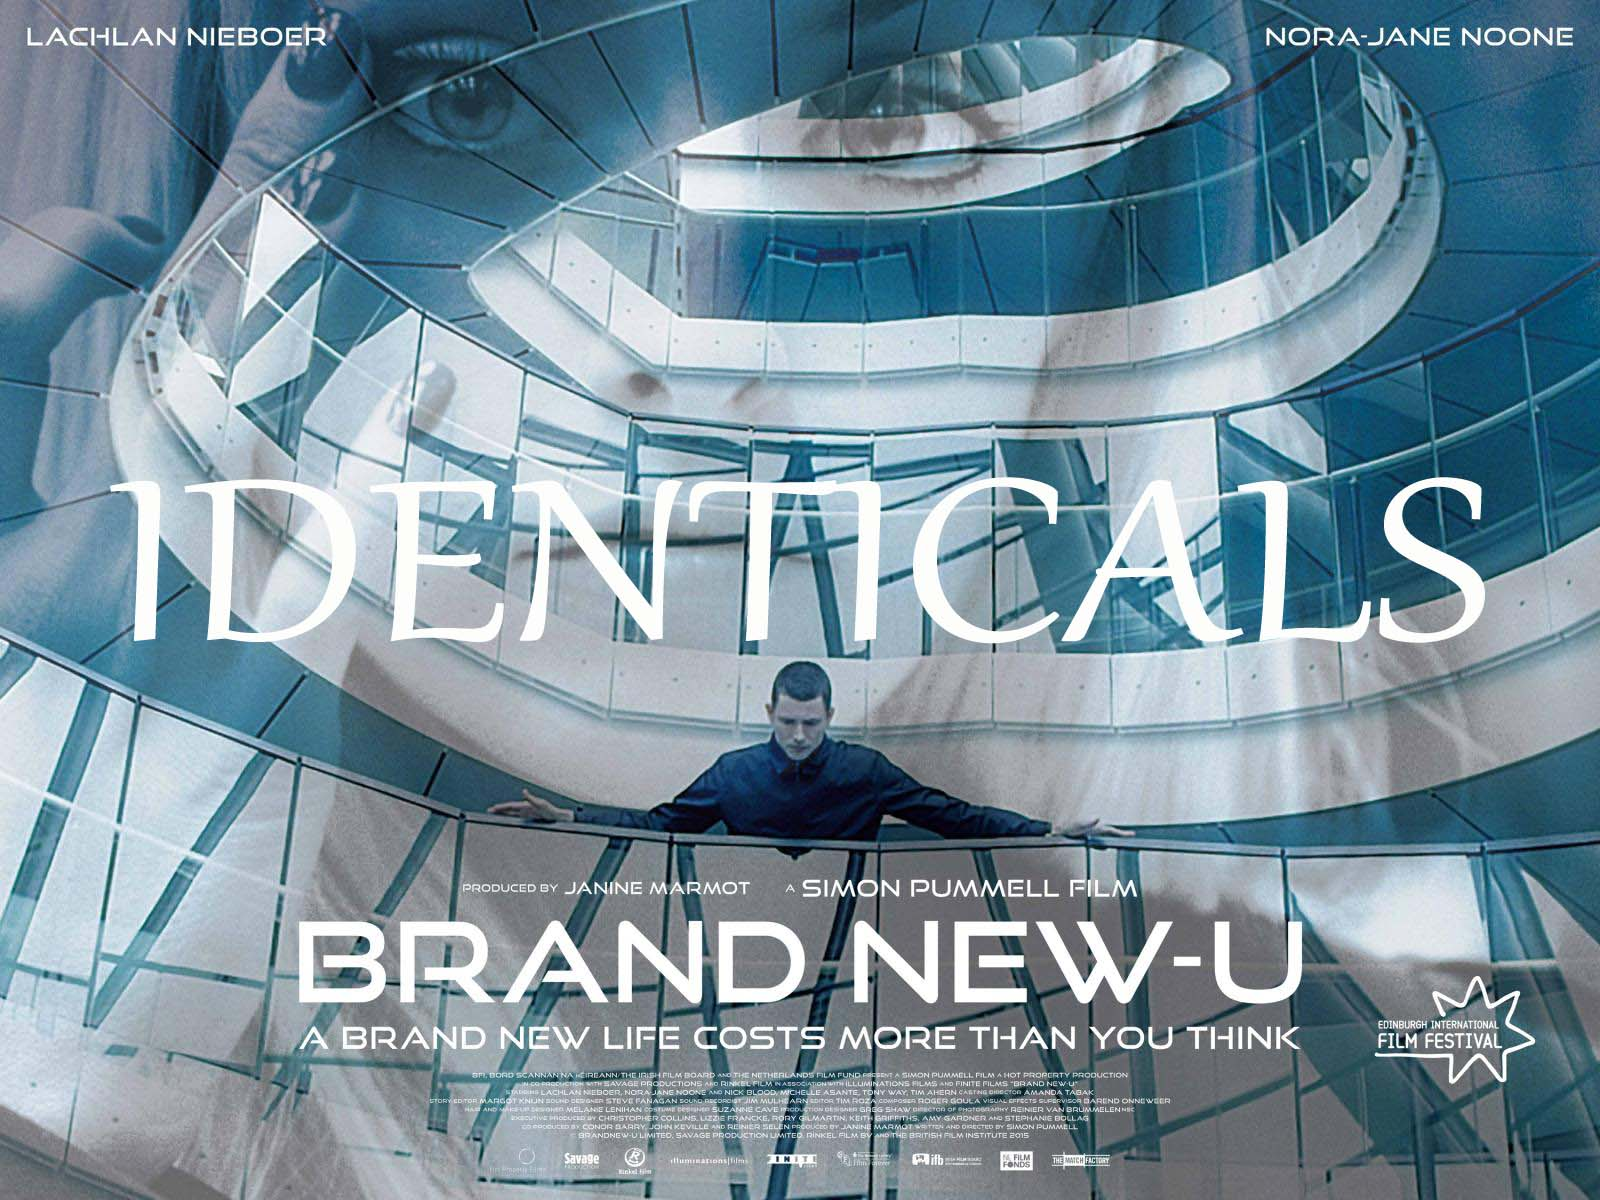 Identicals (Brand New-U) 2016 Movie Free Download